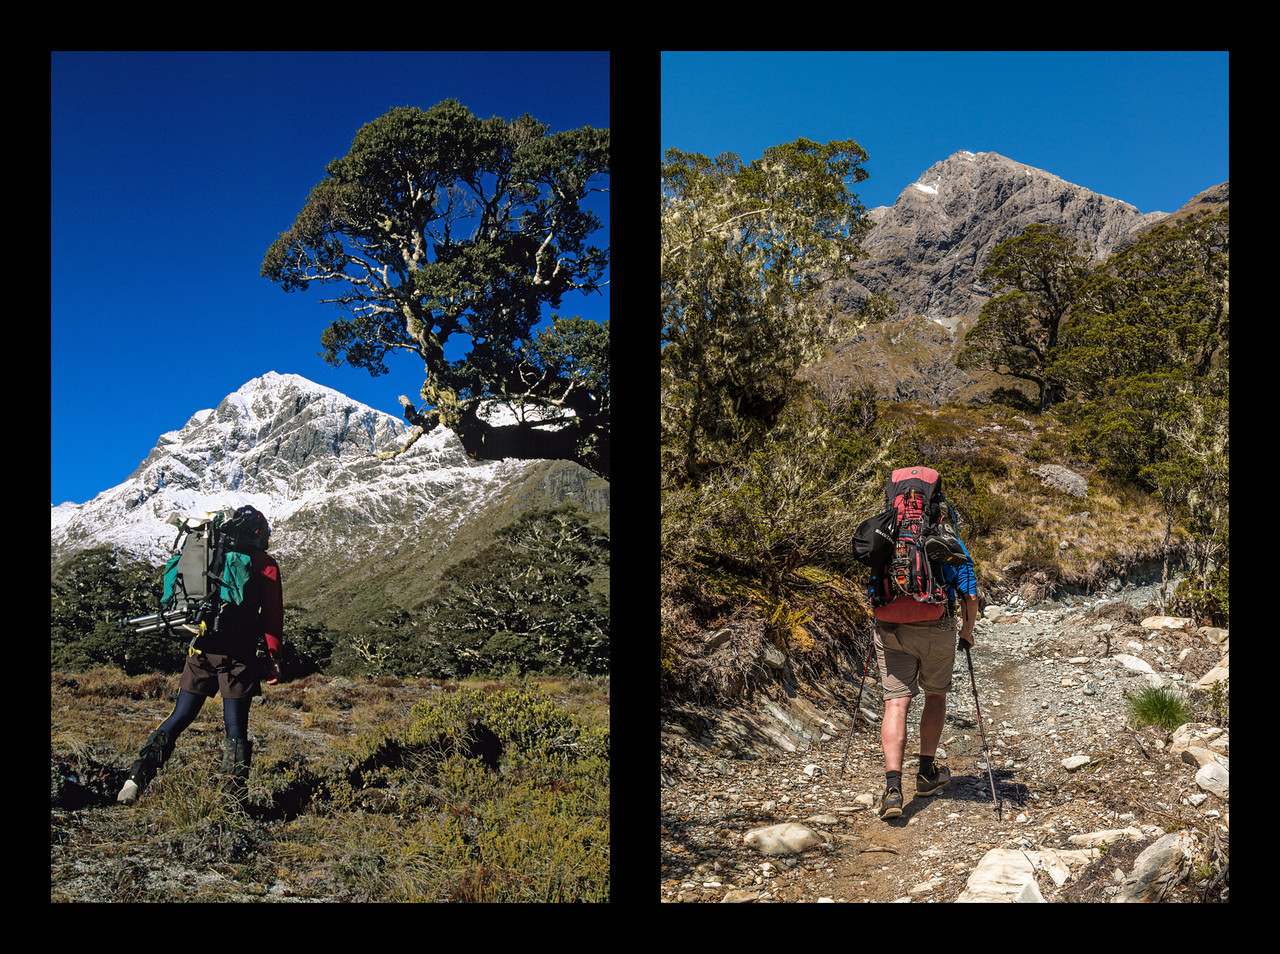 On the Caples Track just below McKellar Saddle, July 2005 (left) and November 2013 (right). This image is typical of DoC's current fashion of 'upgrading' many of our back-country tracks to benched highways